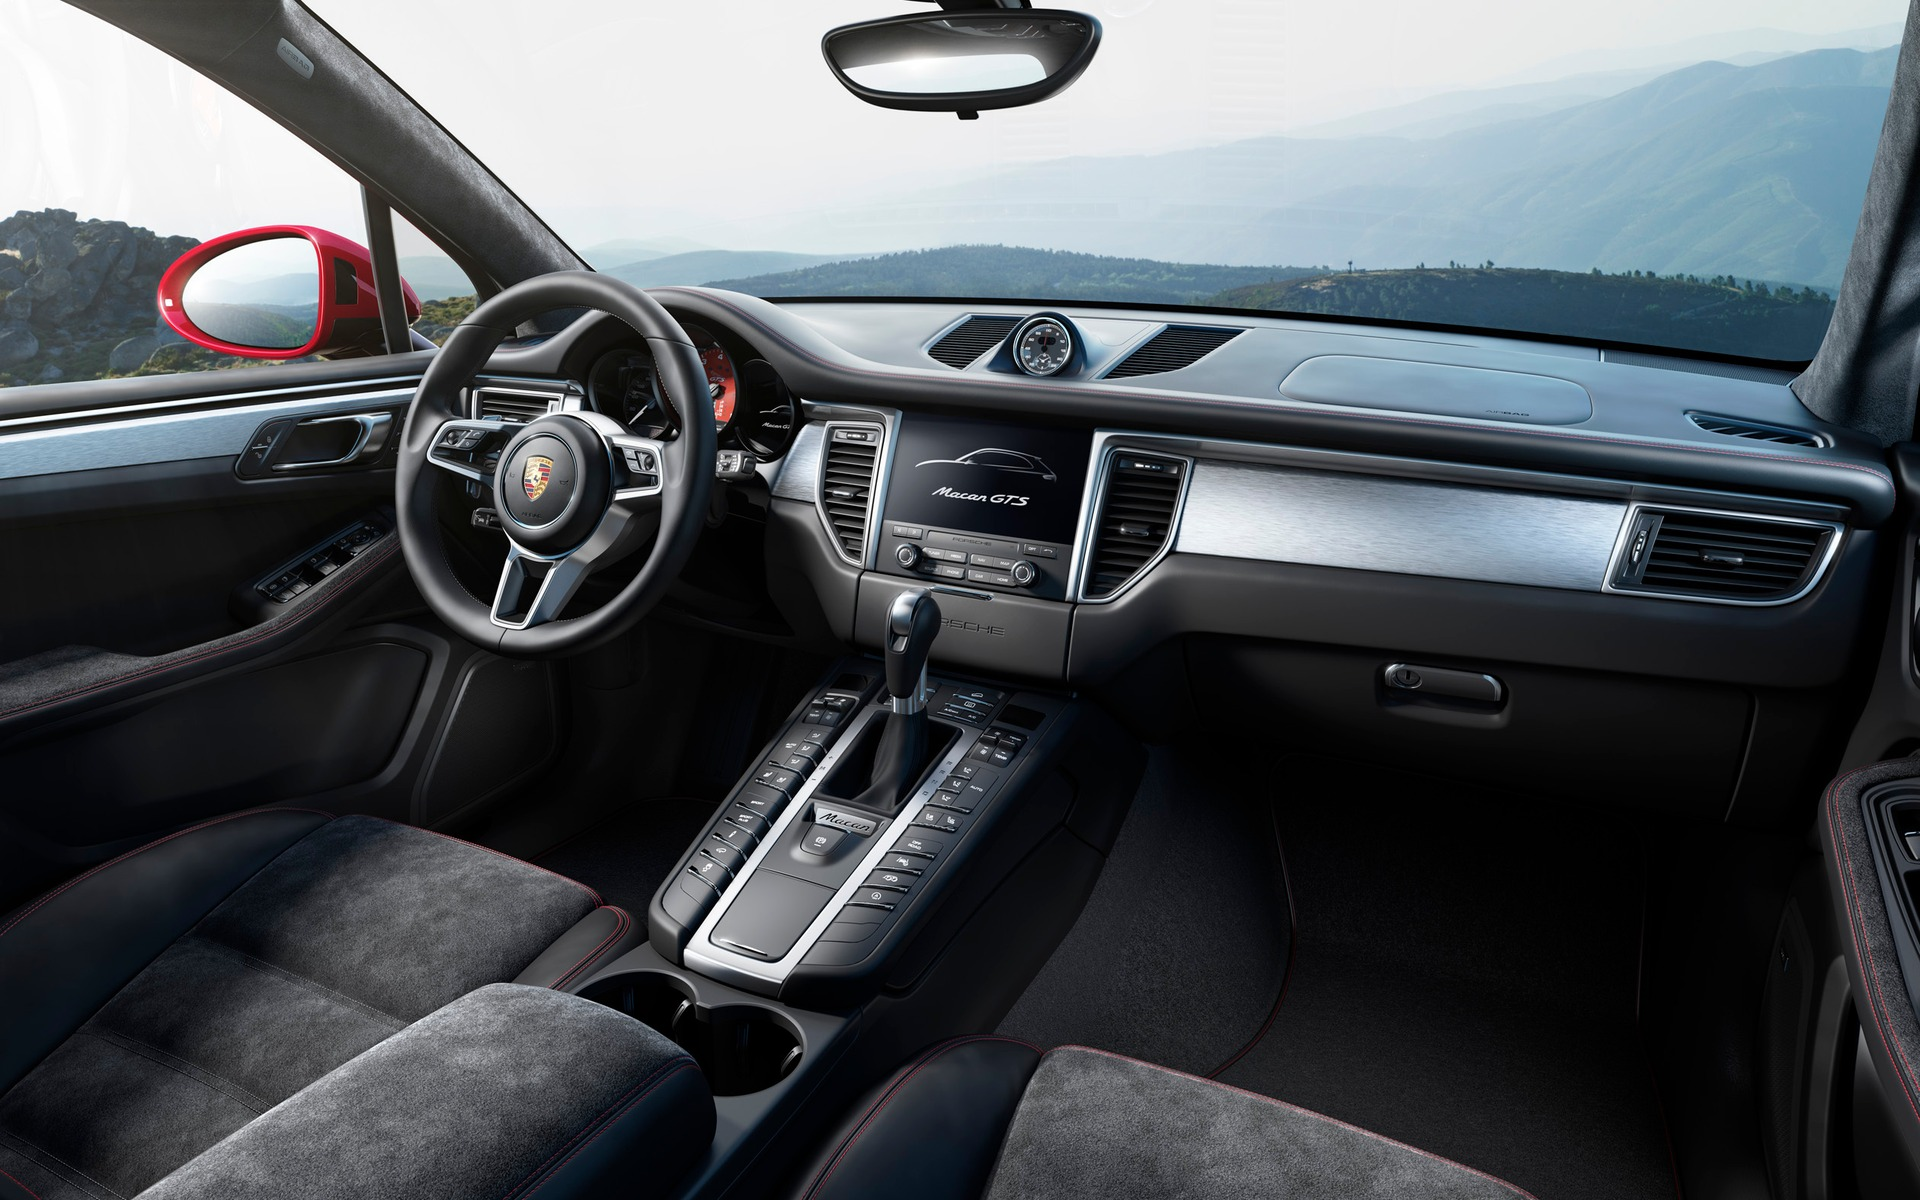 Porsche Macan Gts Interior >> 2017 Porsche Macan GTS: This is The One You Should Buy! - 5/13